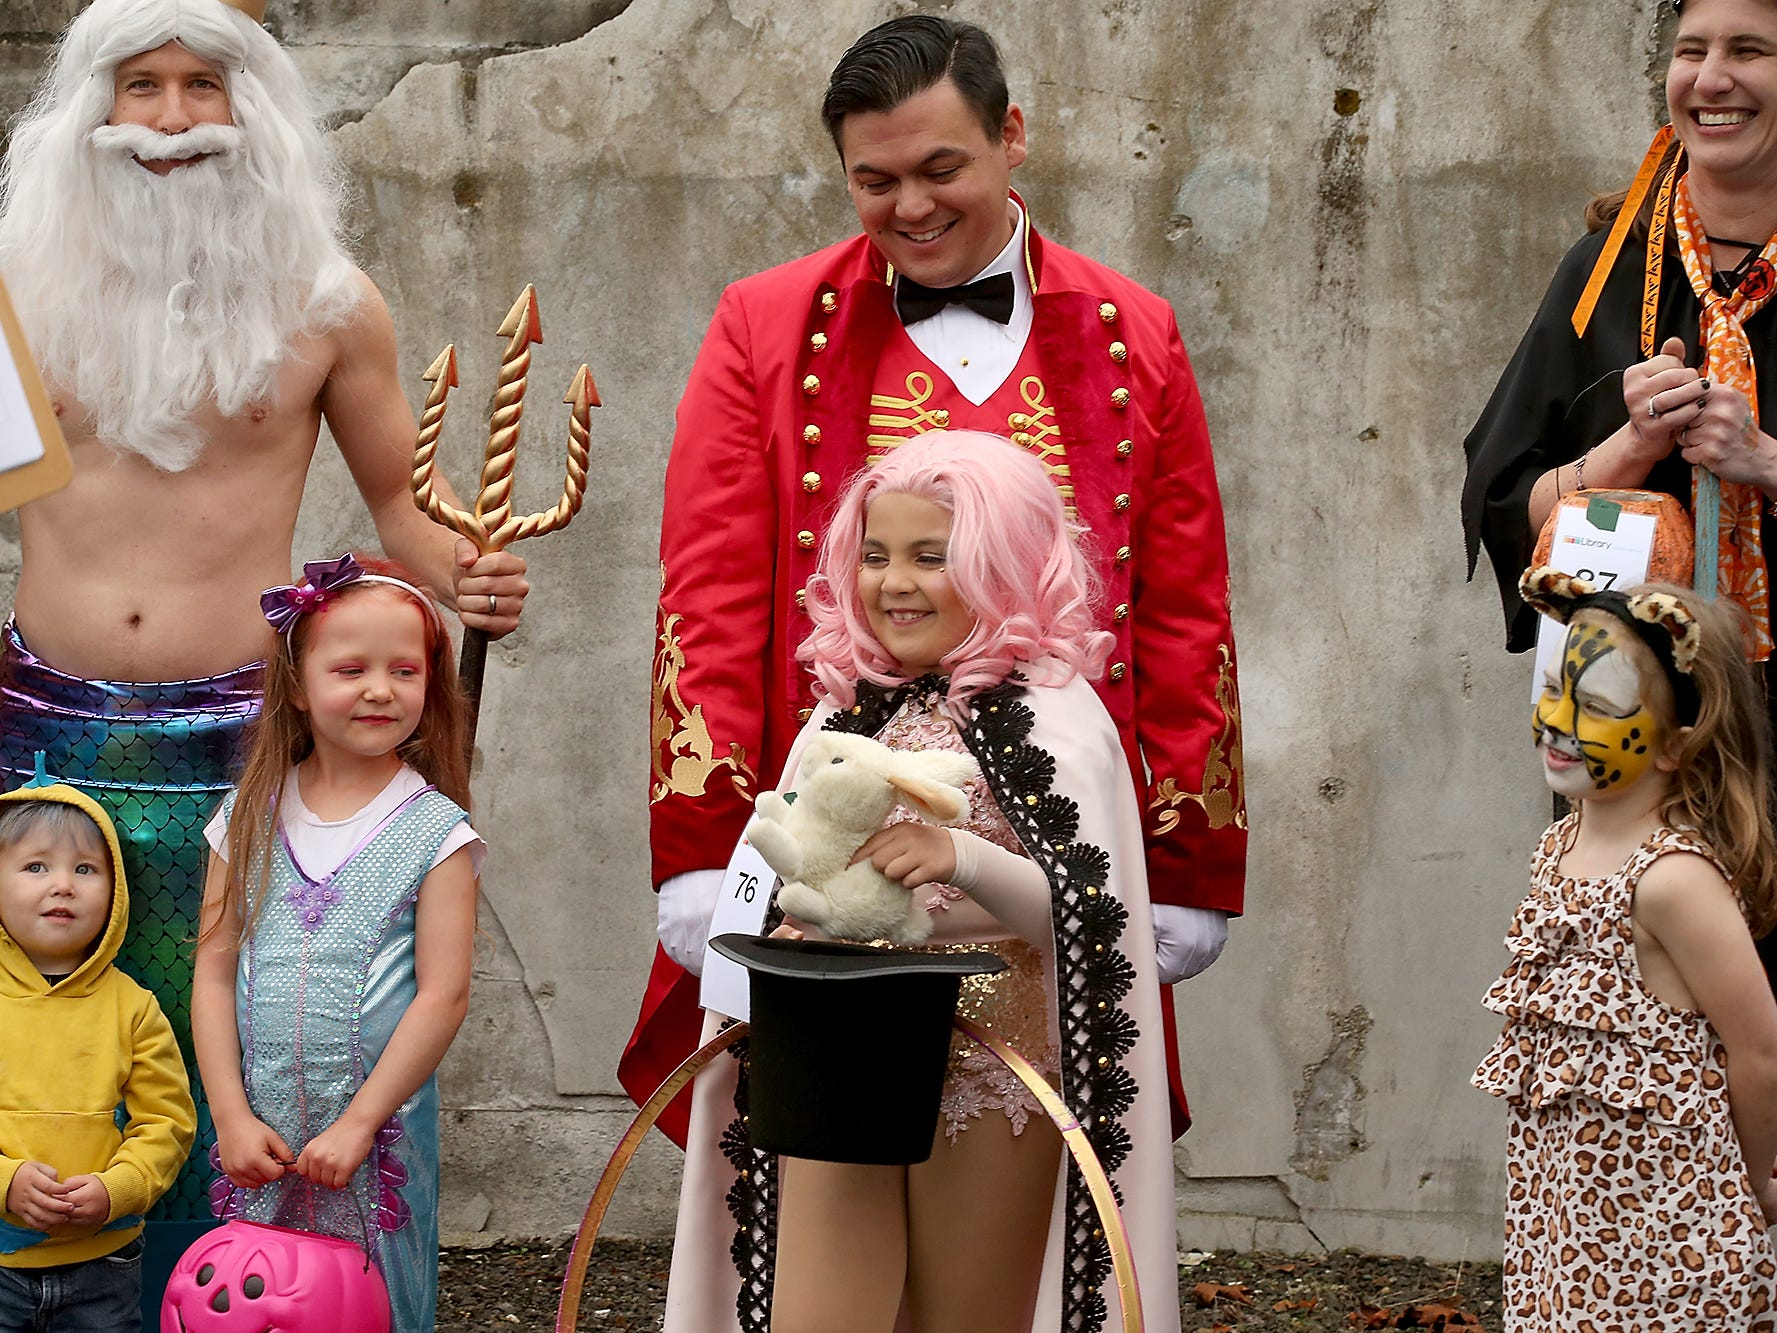 Demonstrating a trick for the judges while dressed as a circus performer, Dahlia Iguina, 6, (center) pulls a rabbit out her father Carlos's ringmaster hat during the costume judging at Spookfest in downtown Port Orchard on Saturday, October 27, 2018.